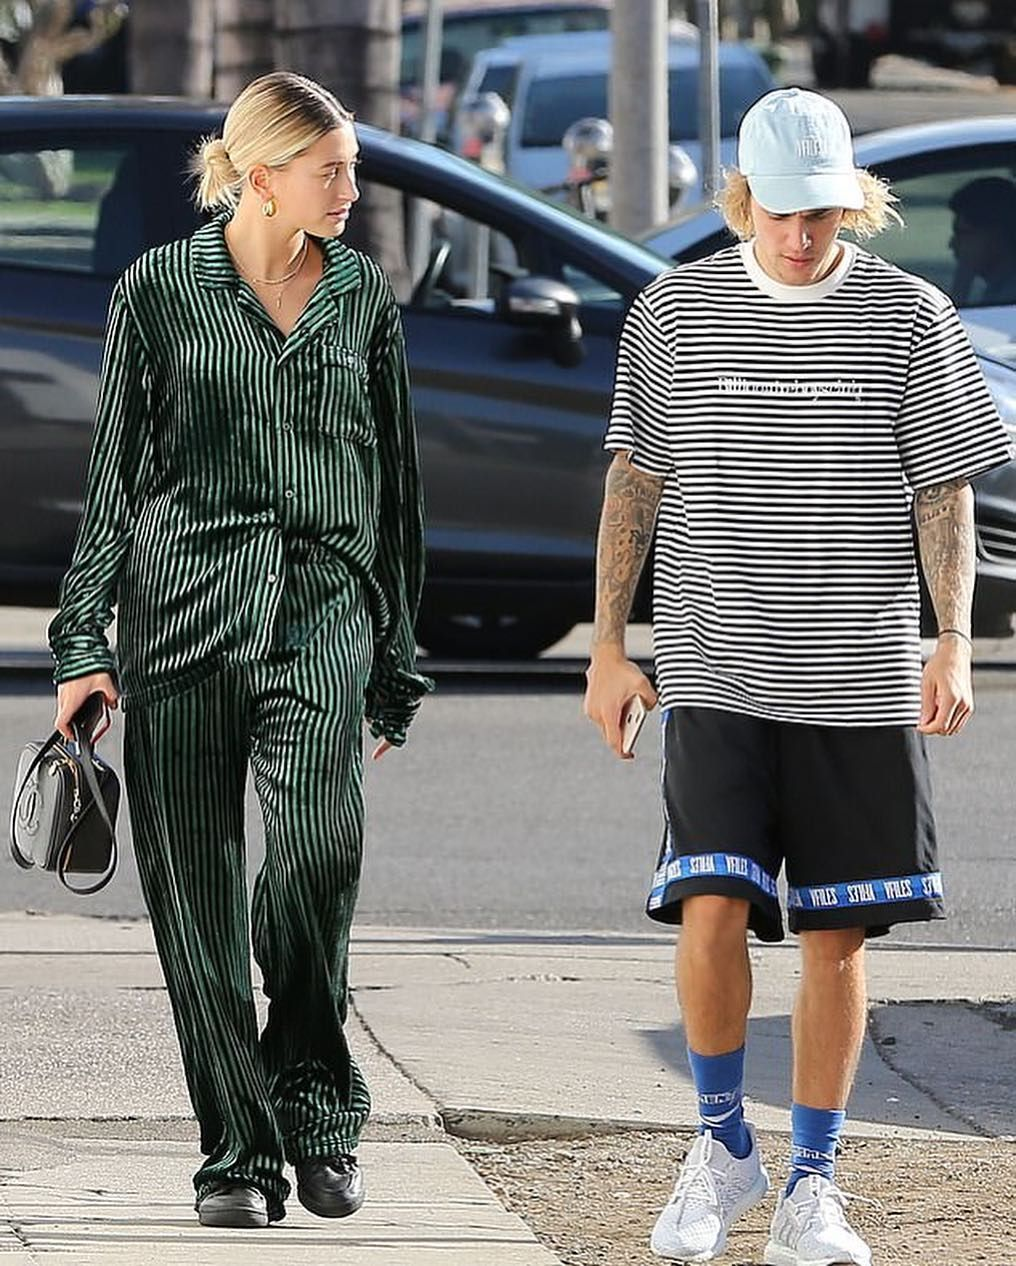 Hailey Baldwin Candids On Instagram October 9 2018 Hailey And Justin Spotted In Los Angeles Haileybaldwin Justinbieber Hailey Baldwin Star Fashion Hailey